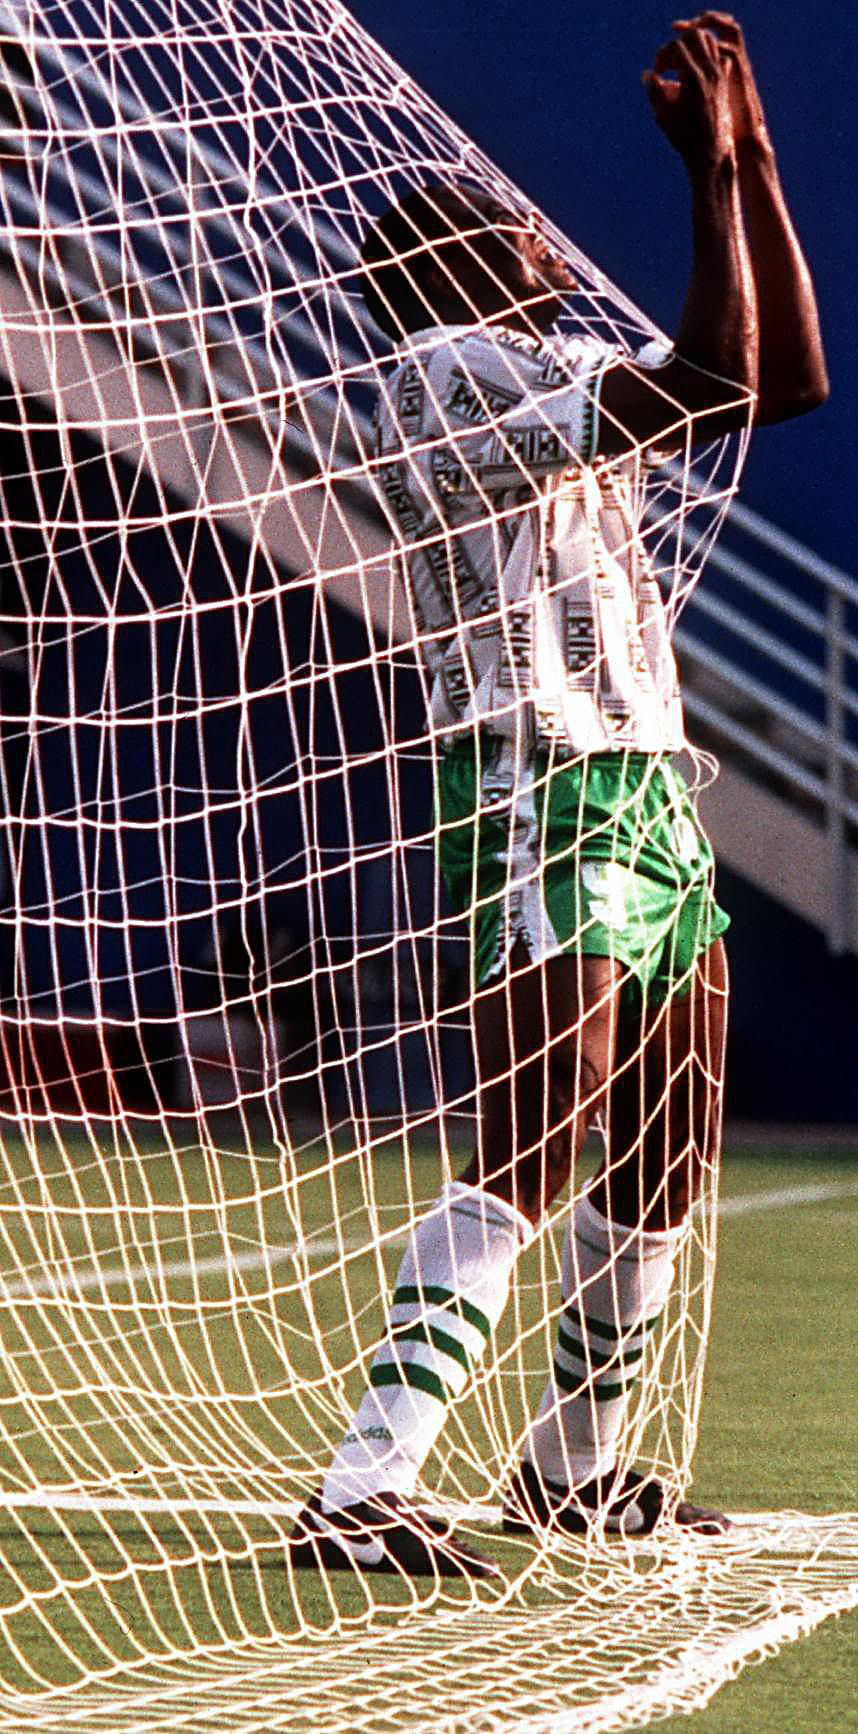 Nigeria's Rashidi Yekini celebrates in the net after scoring his nation's first goal of their game against Bulgaria during their World Cup game at the Cotton Bowl in June 1994.